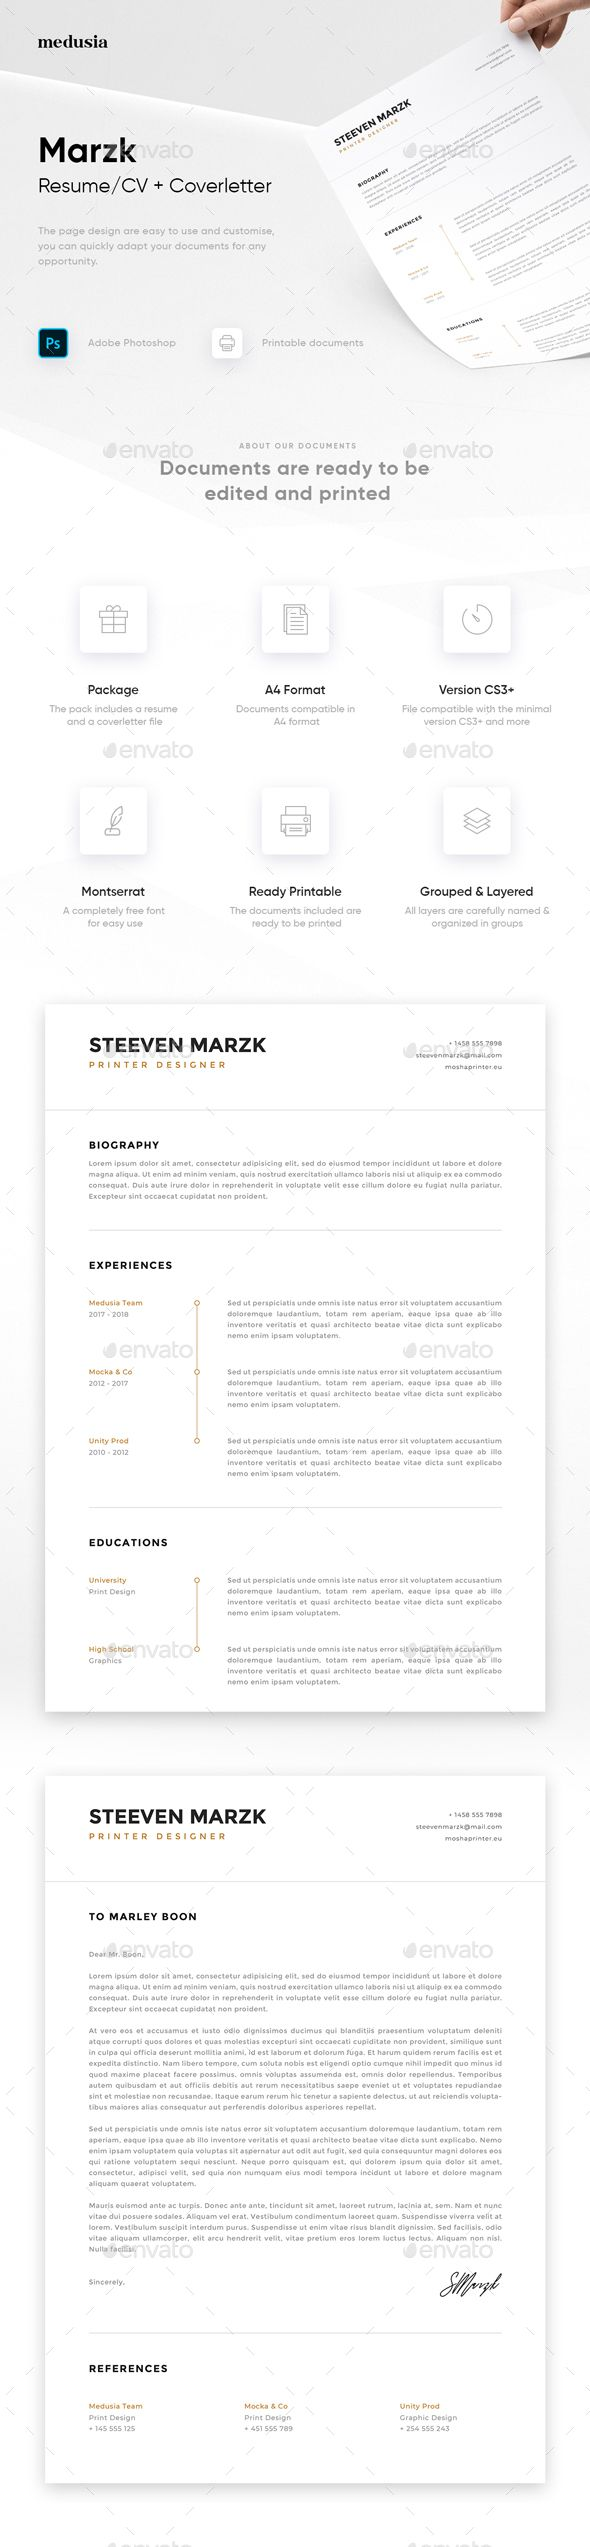 Marzk Resume/Coverletter Resumes Stationery Cover